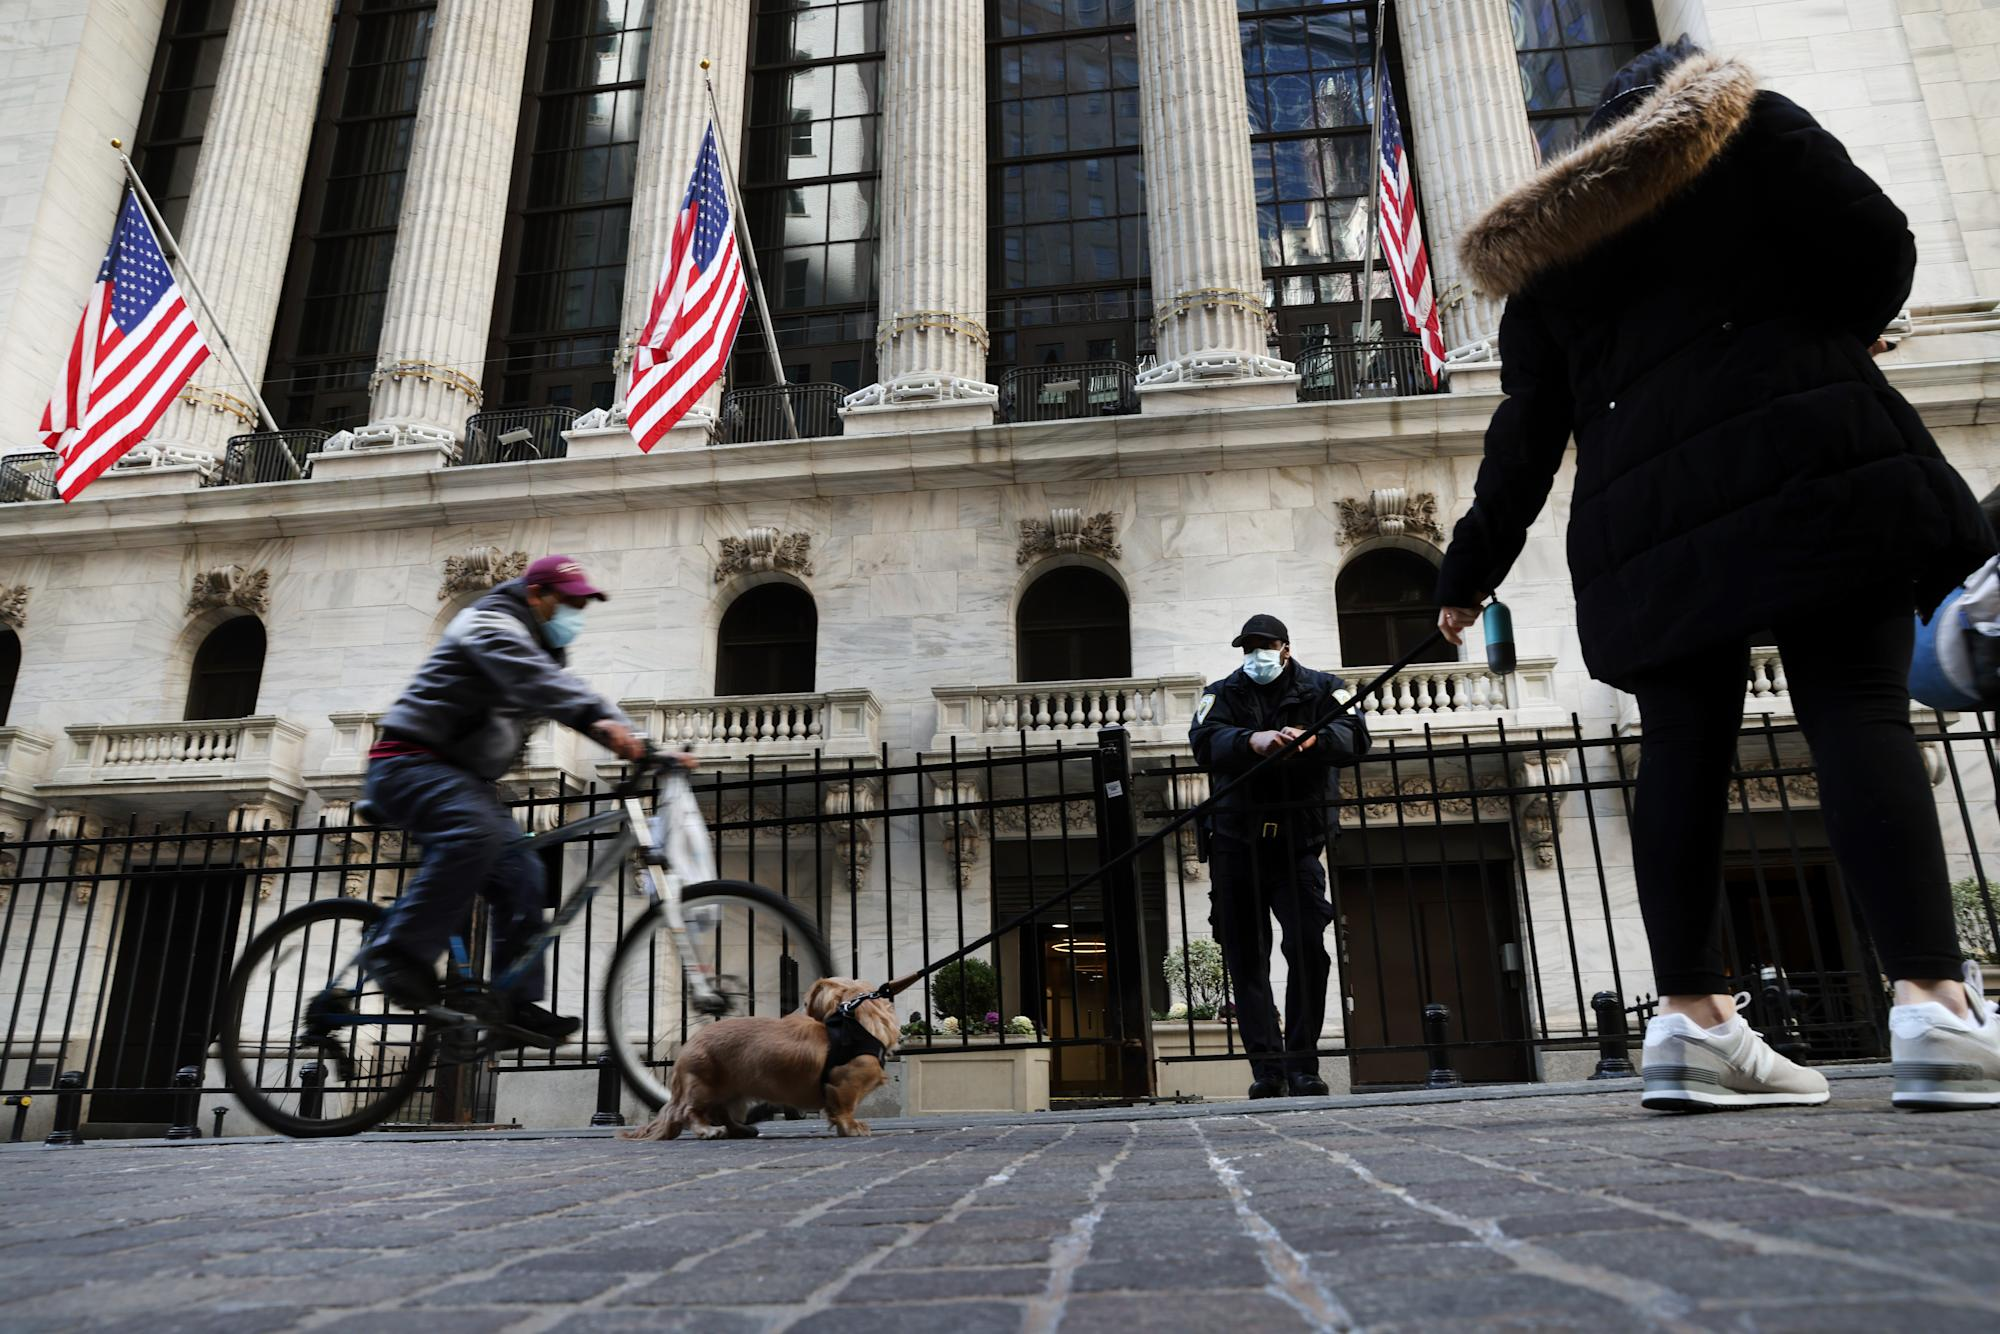 stock-market-news-live-updates:-stocks-trade-mixed,-microsoft-and-boeing-shares-weigh-on-dow